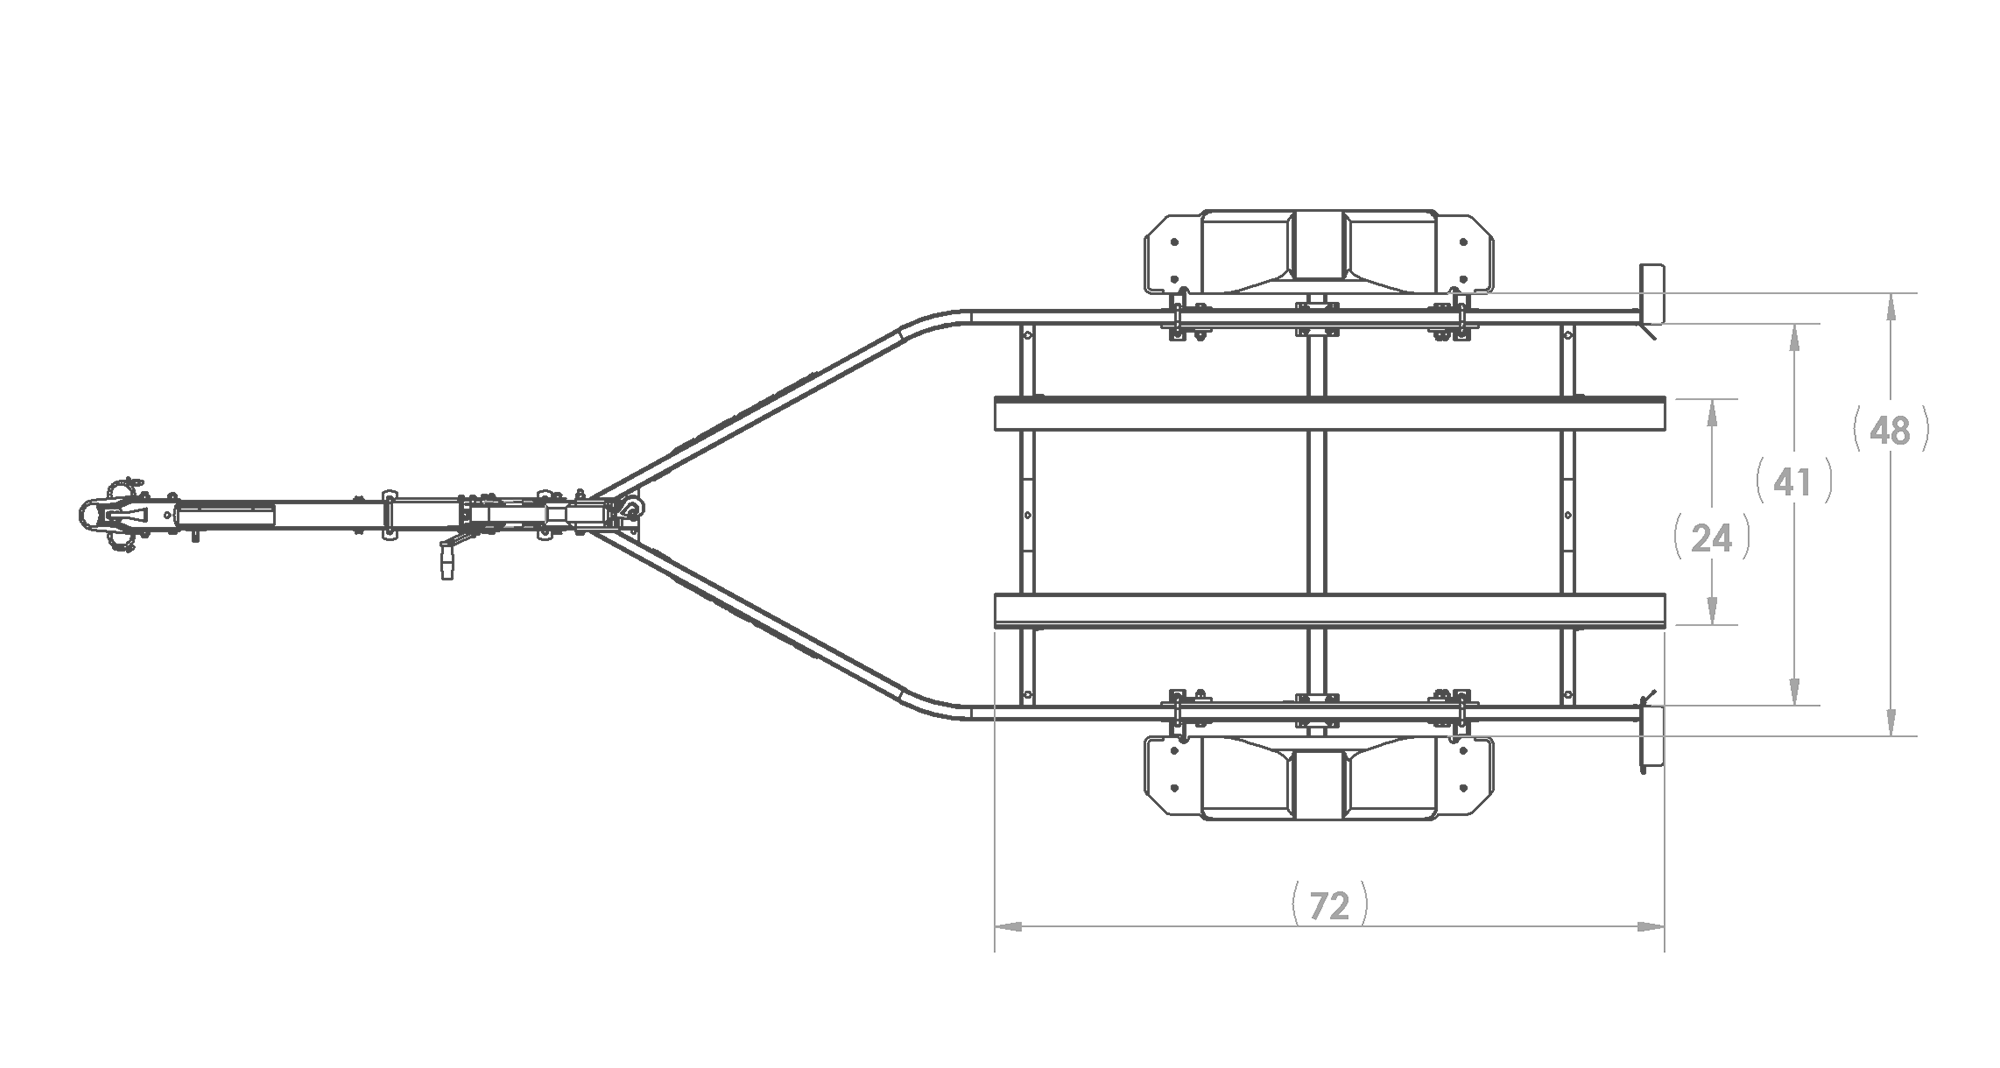 Karavan Trailer's Single Watercraft Steel Trailer w/Step Fender, model number WCE-1500-46, Top View Measurement